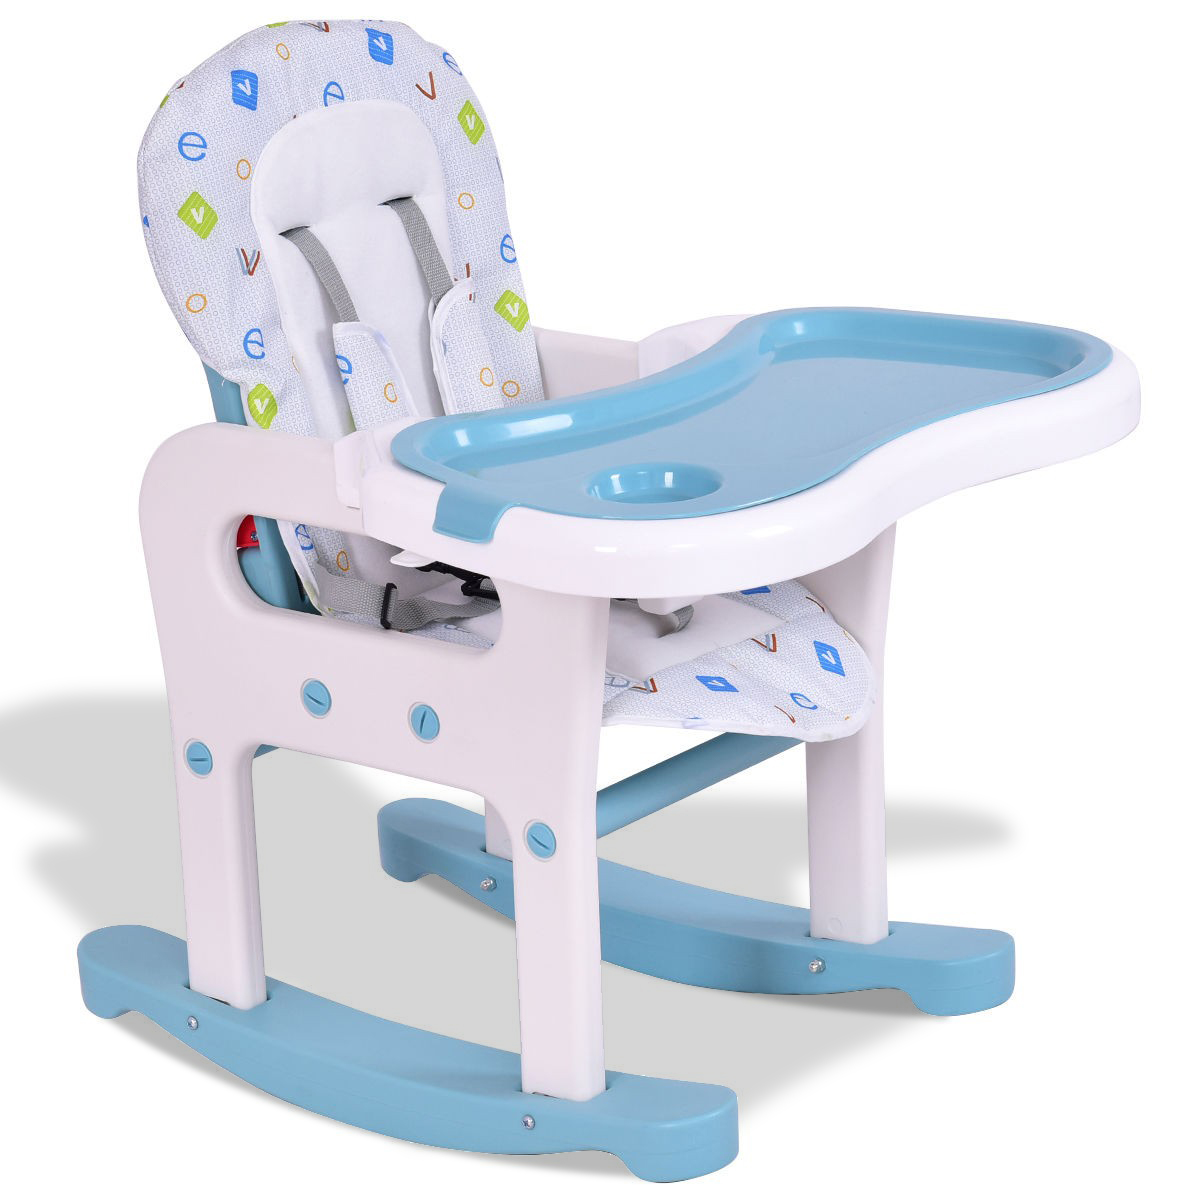 baby highchair 3 in 1 white chair covers for dining room chairs ingenuity trio smartclean high aqua blue